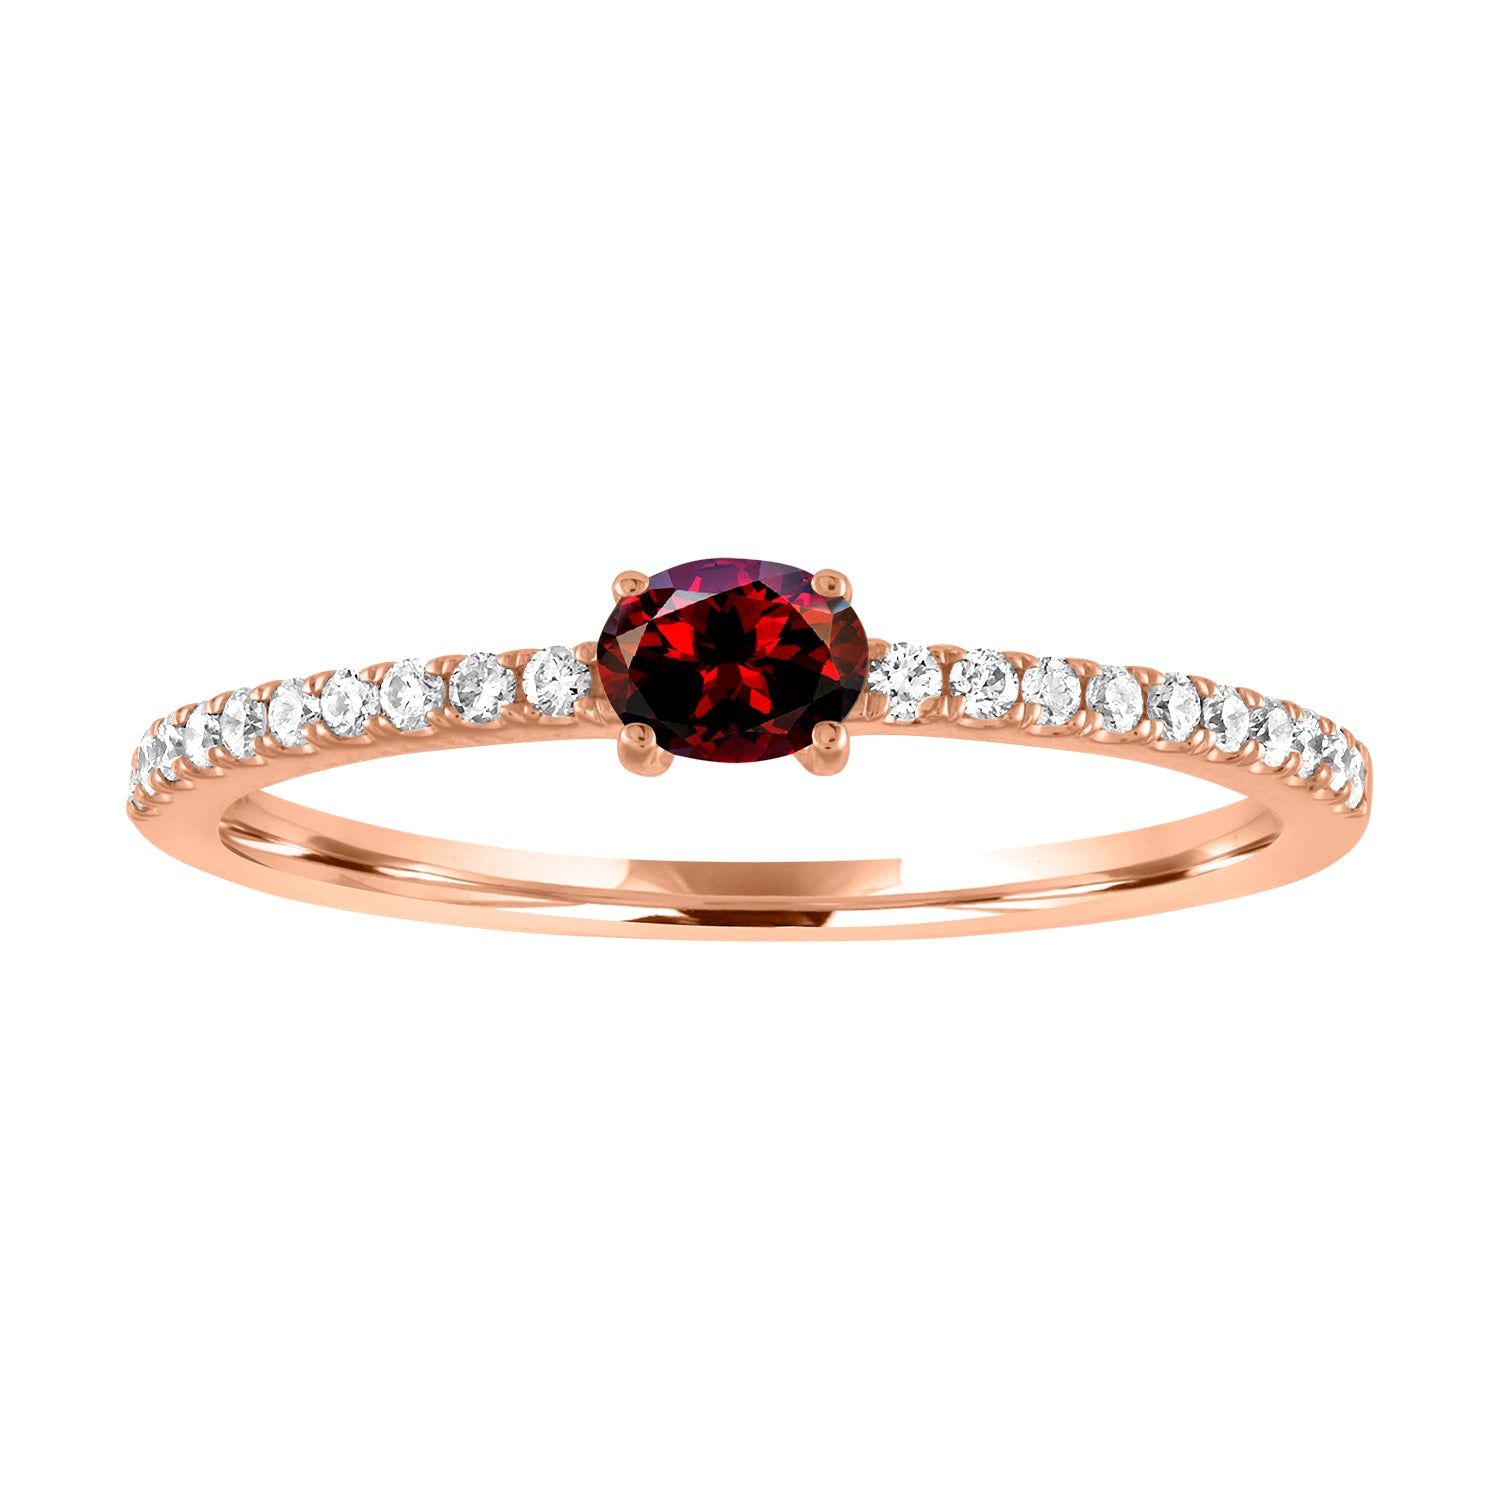 Micropave band with horizontal oval garnet center